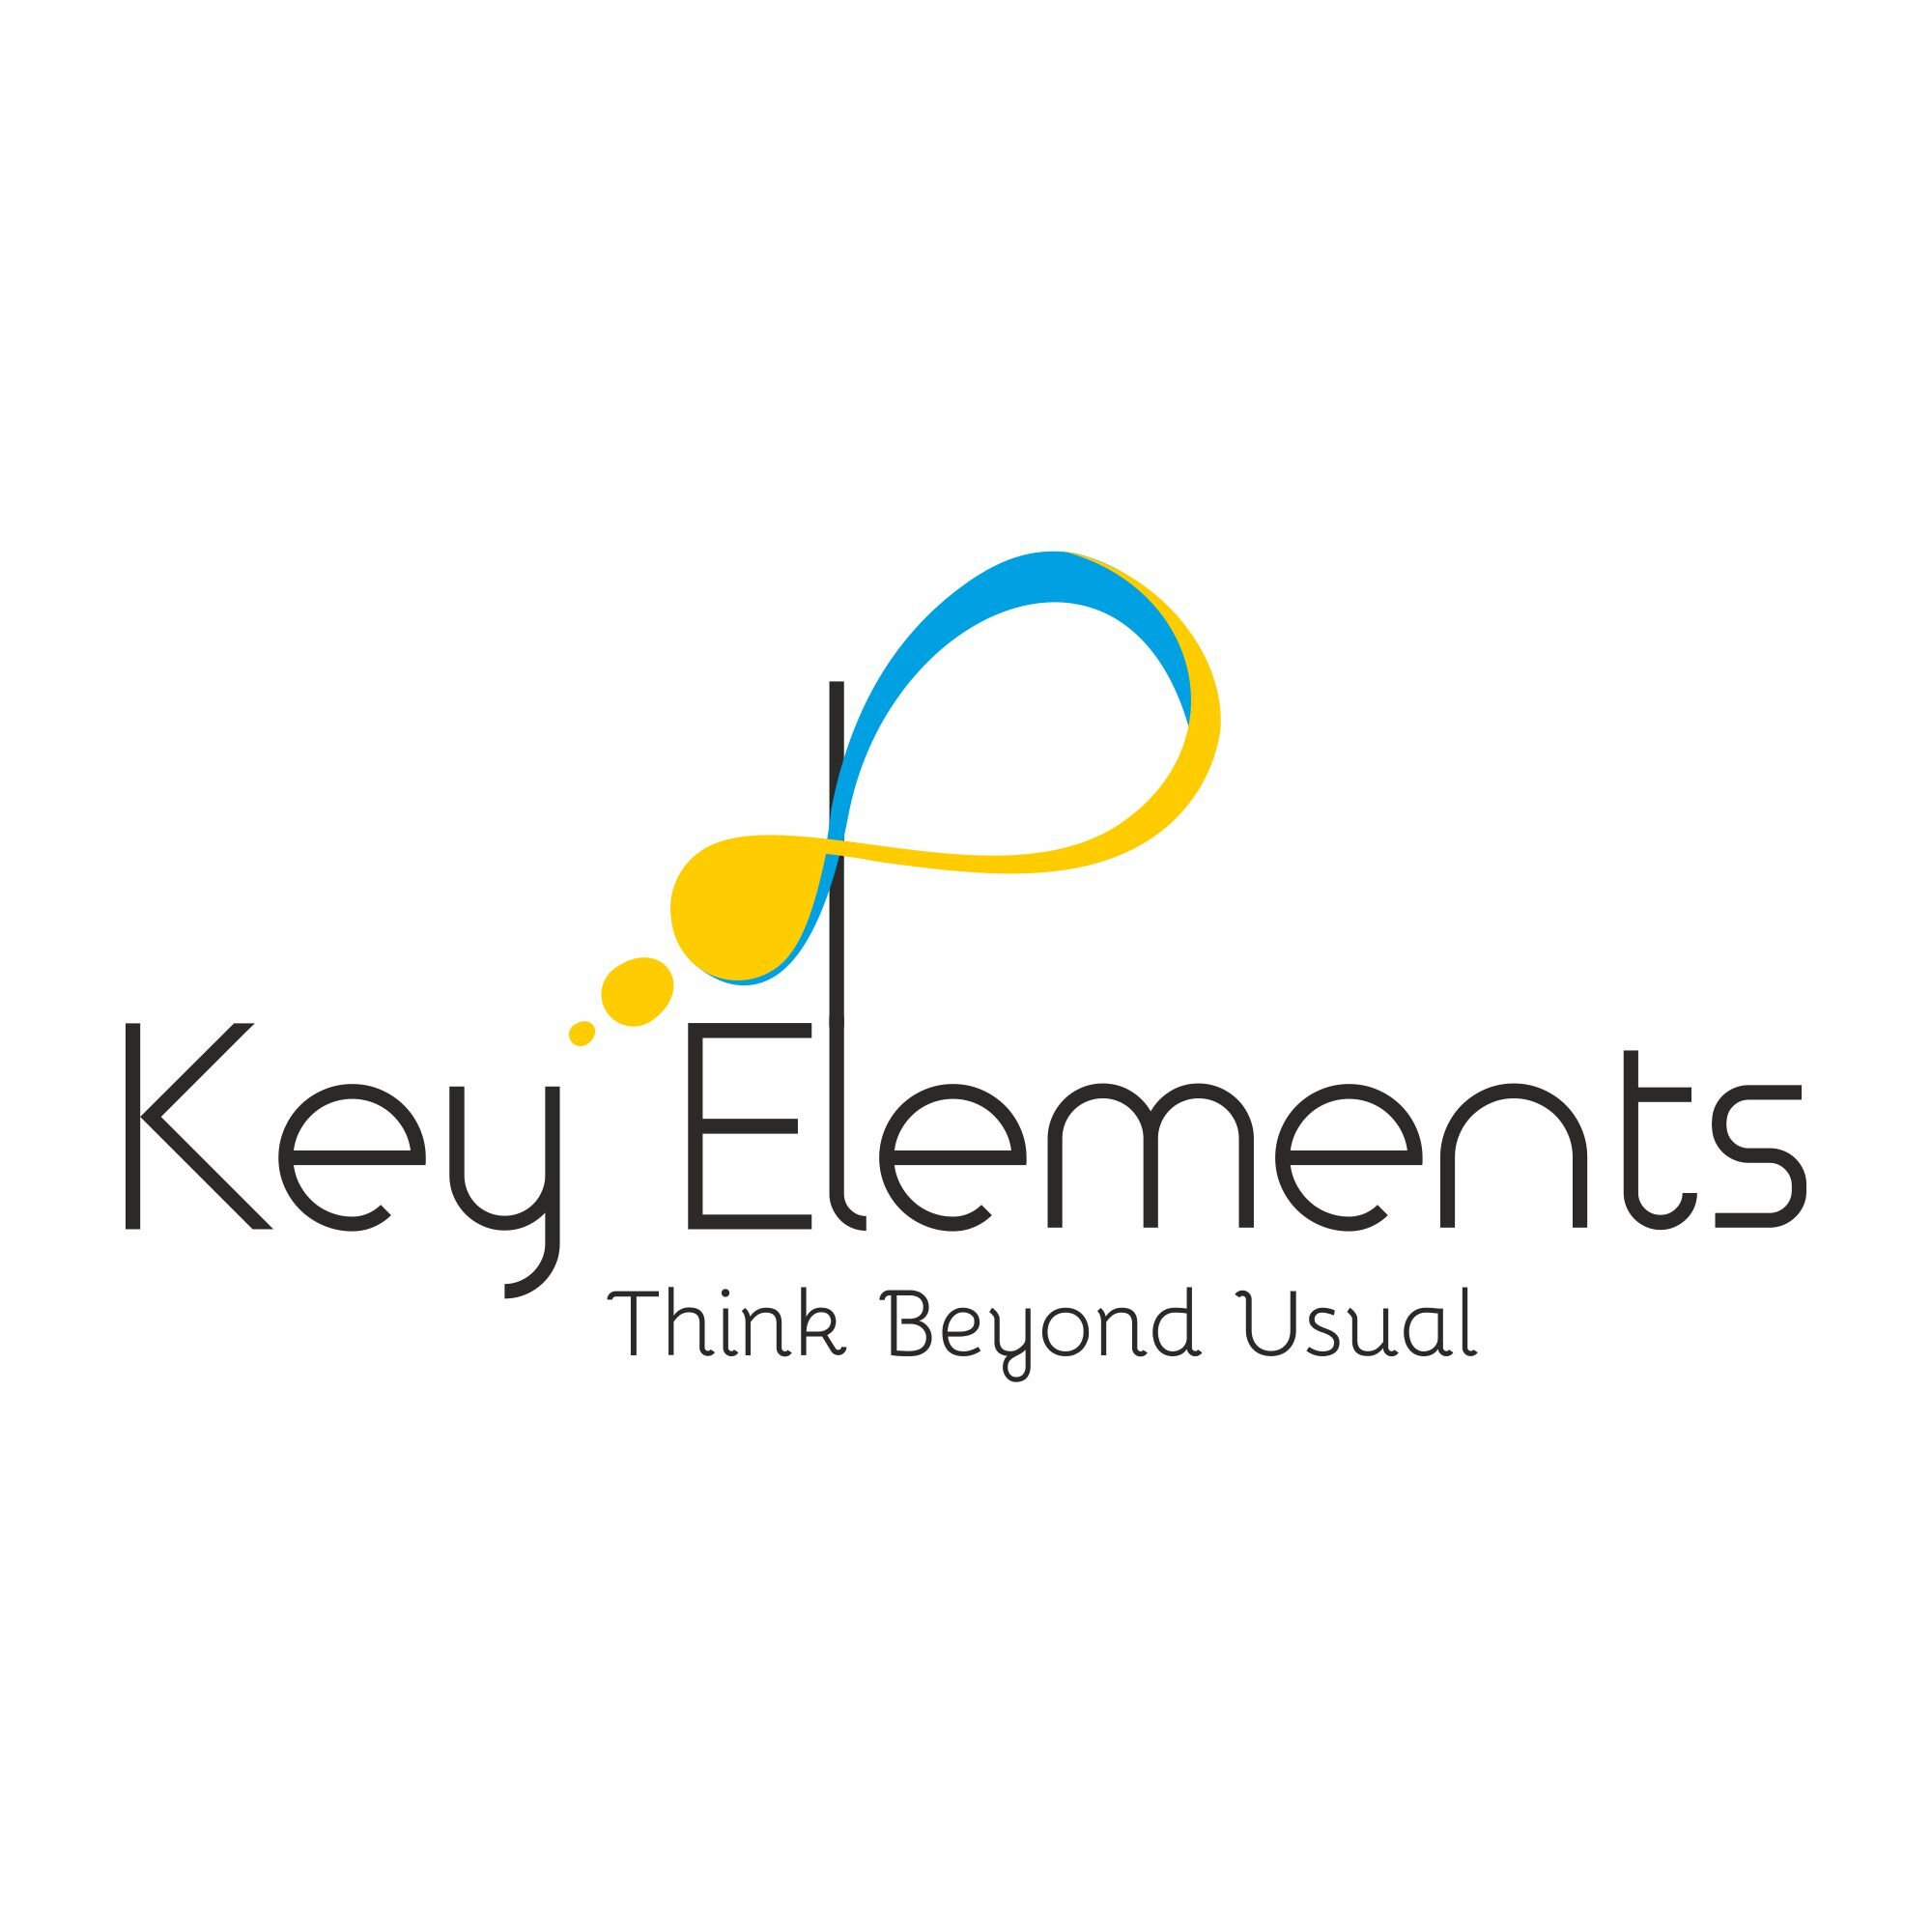 6 key elements 6 what are the key elements of design for manufacturing and for logistics from mktg 4223 at oklahoma state.